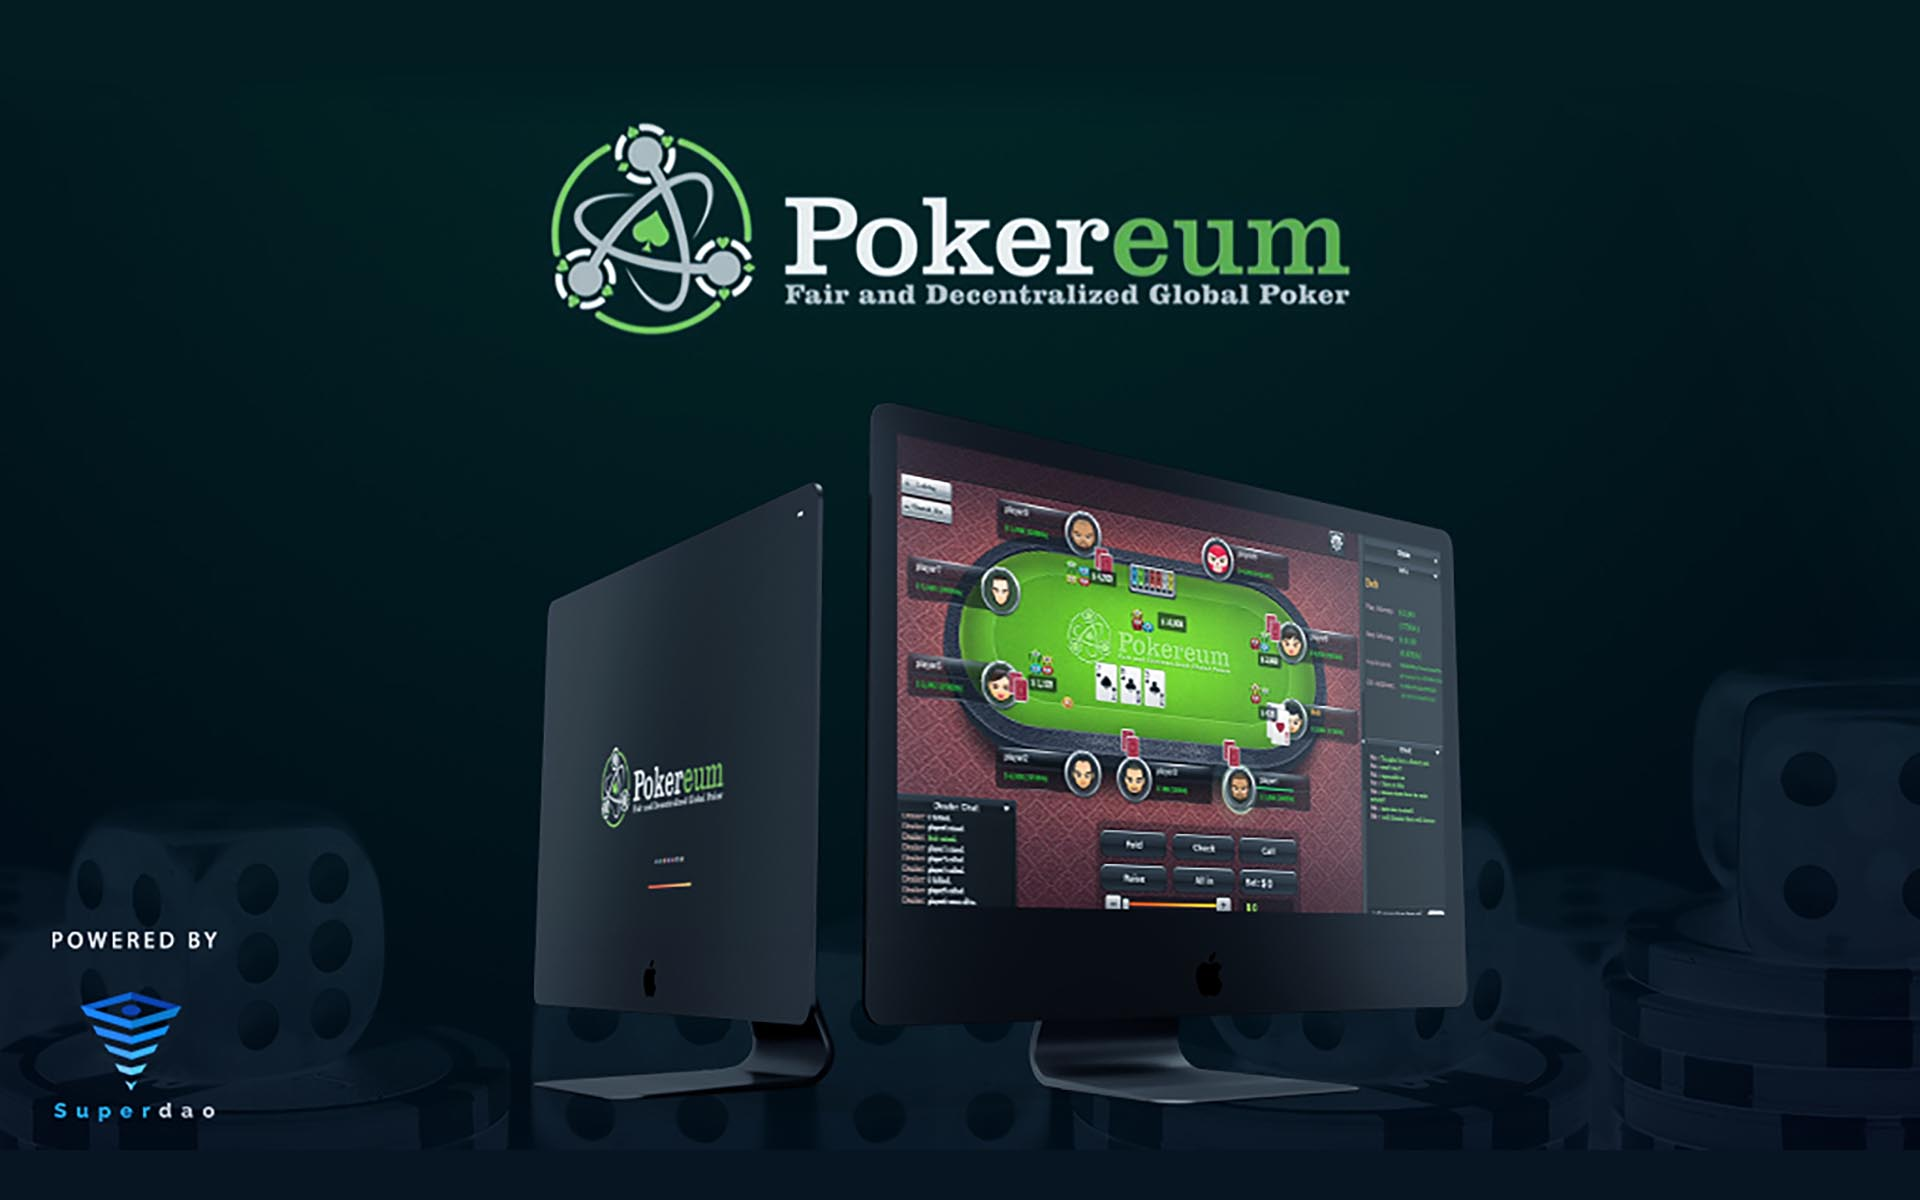 Ethereum Poker 'Pokereum' Demo Released by SuperDAO, Fundraising Now Pre-ICO Only with Bonus SUP Rewards